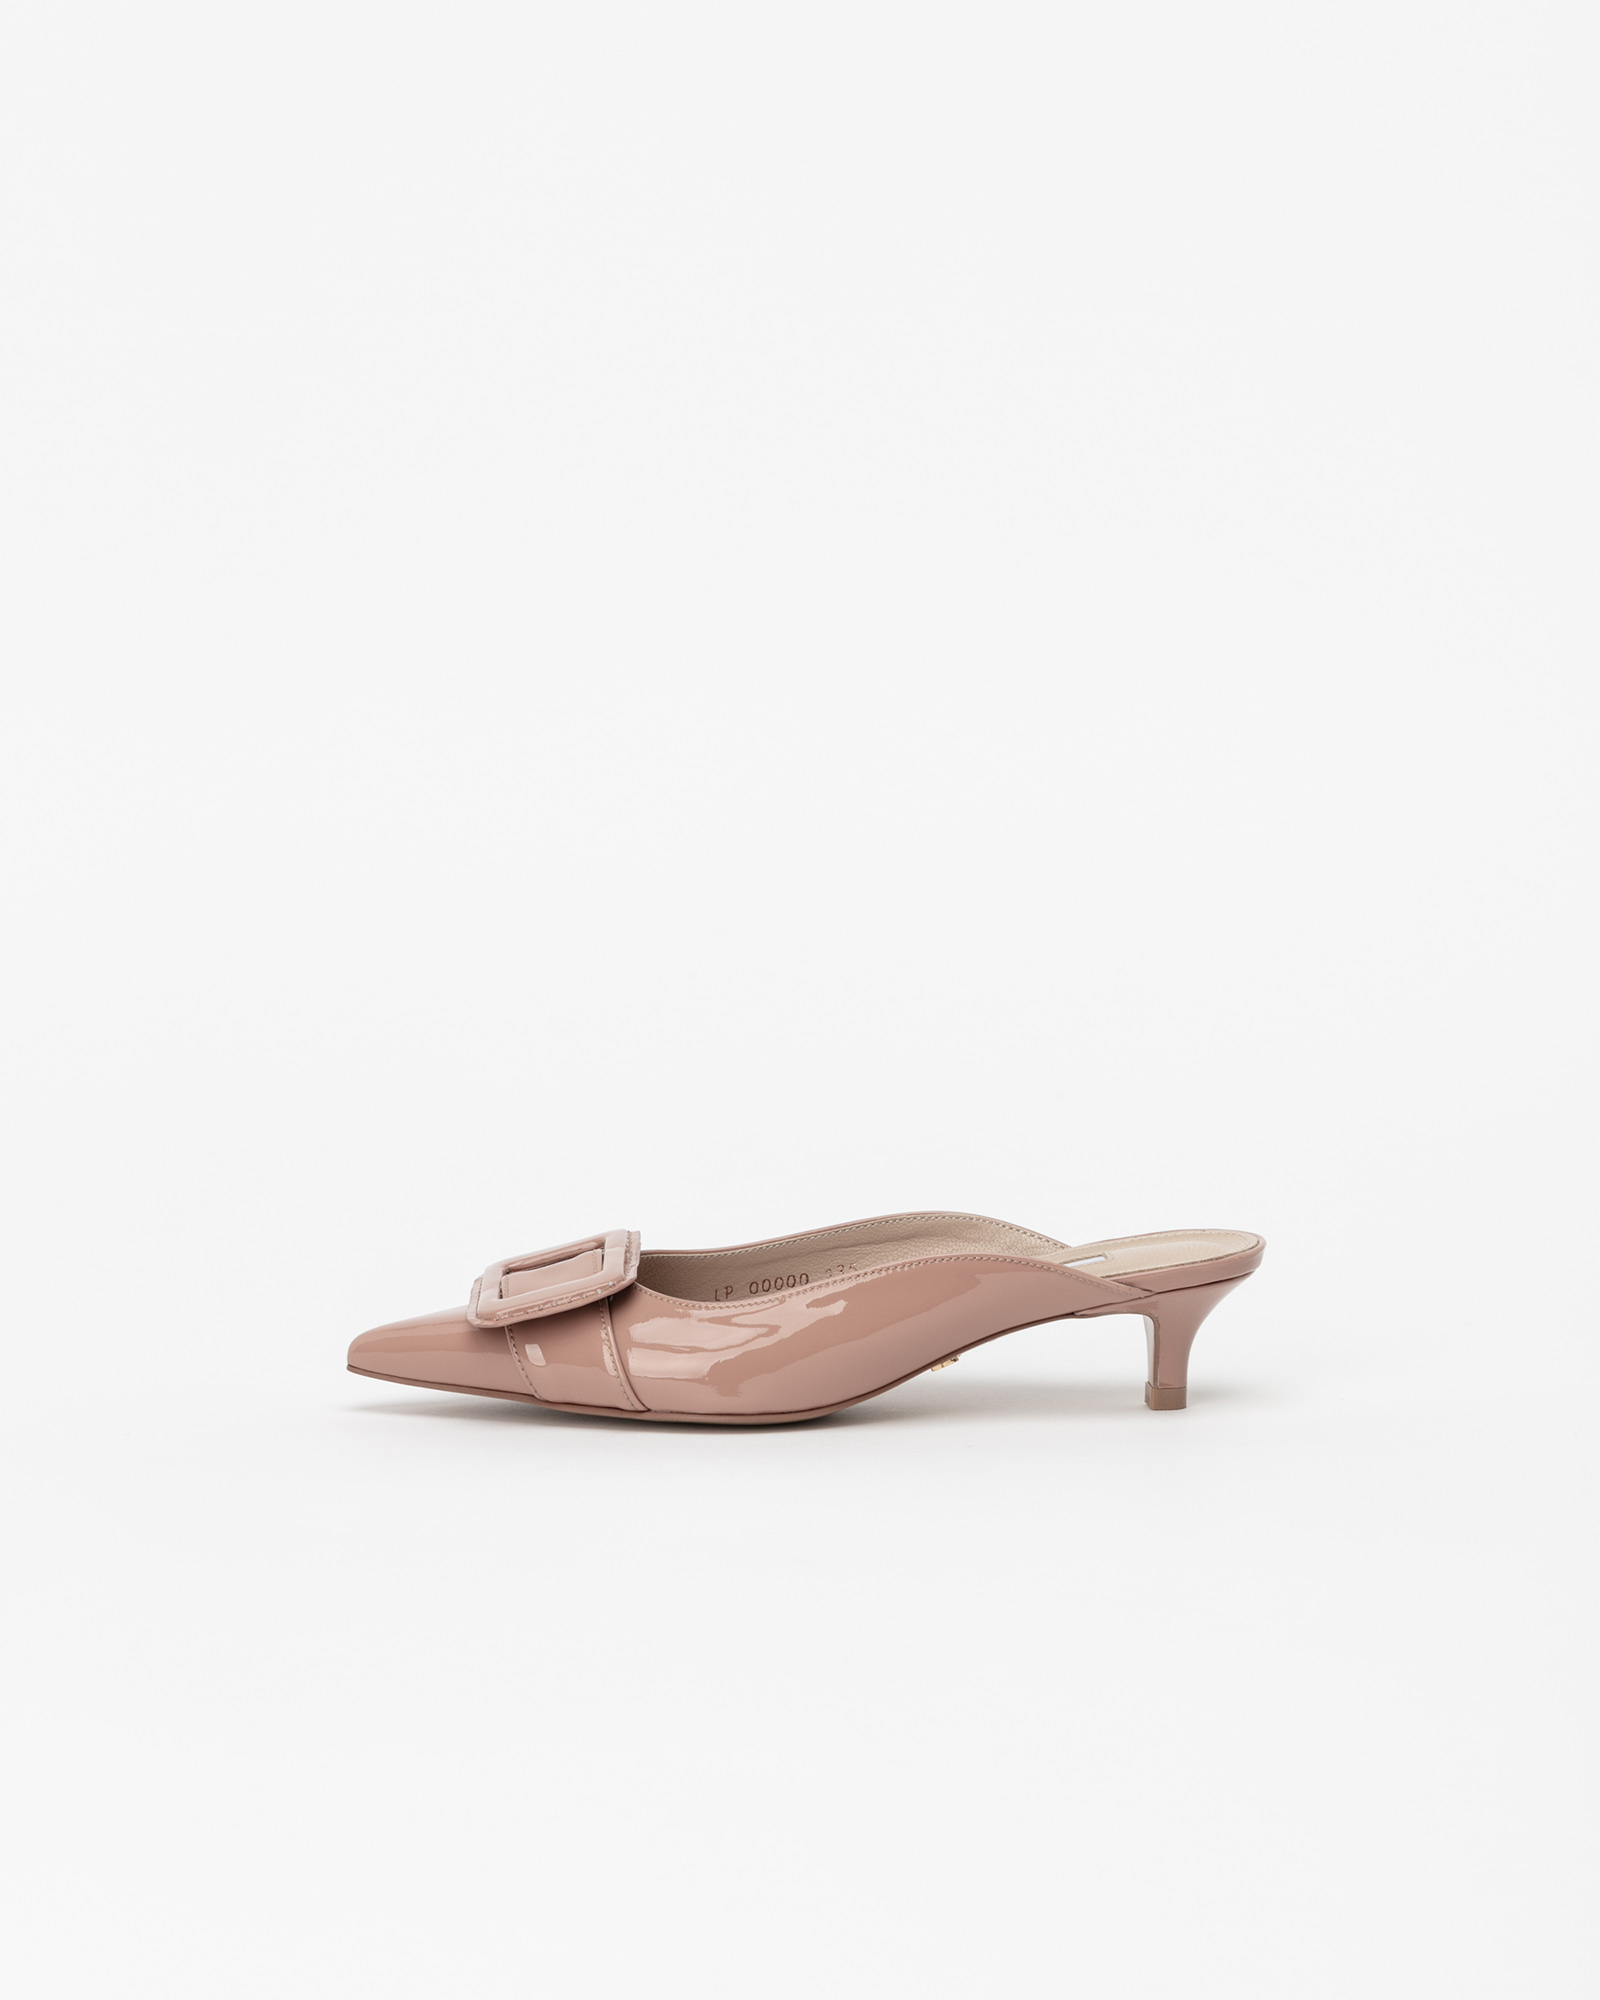 Shanon Mules in Neo Indy Pink Patent